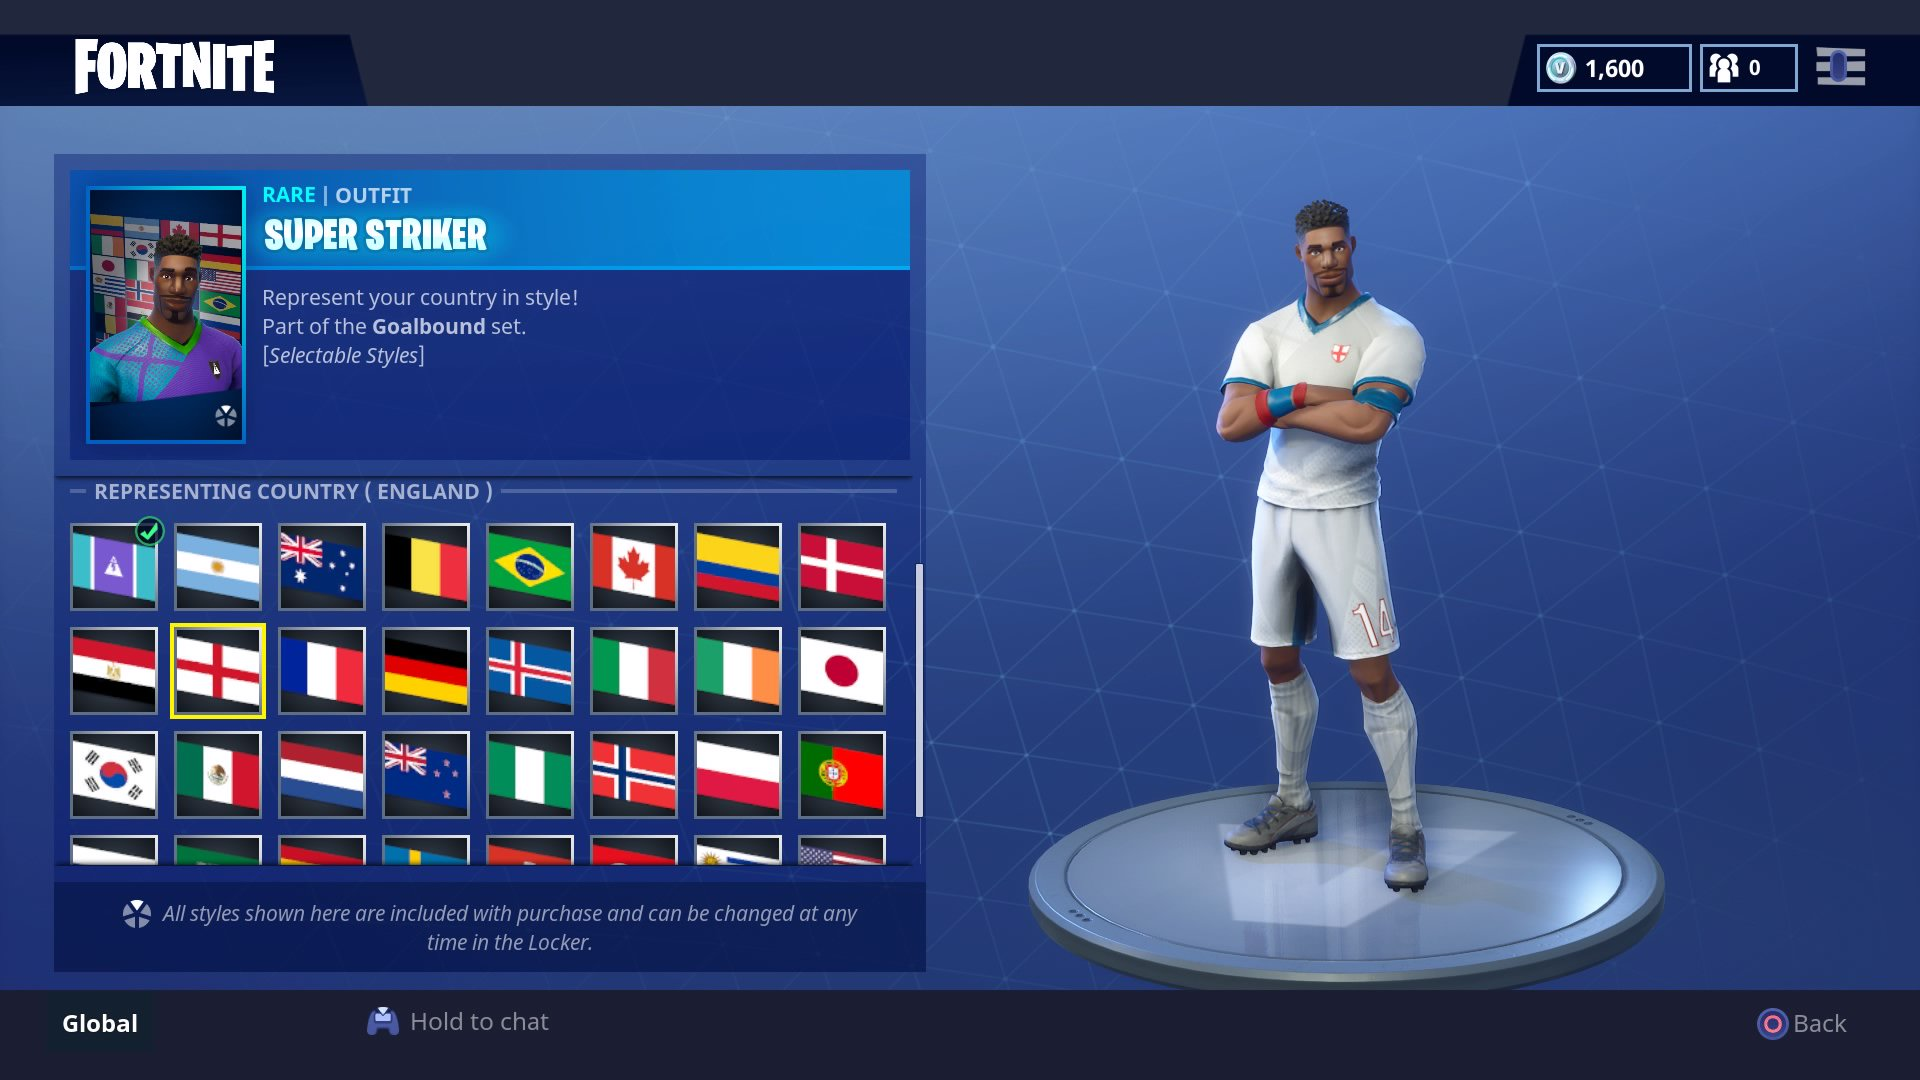 the skins and kits look fantastic but it s unfair that so many countries in the world cup aren t represented - every fortnite skin ever made